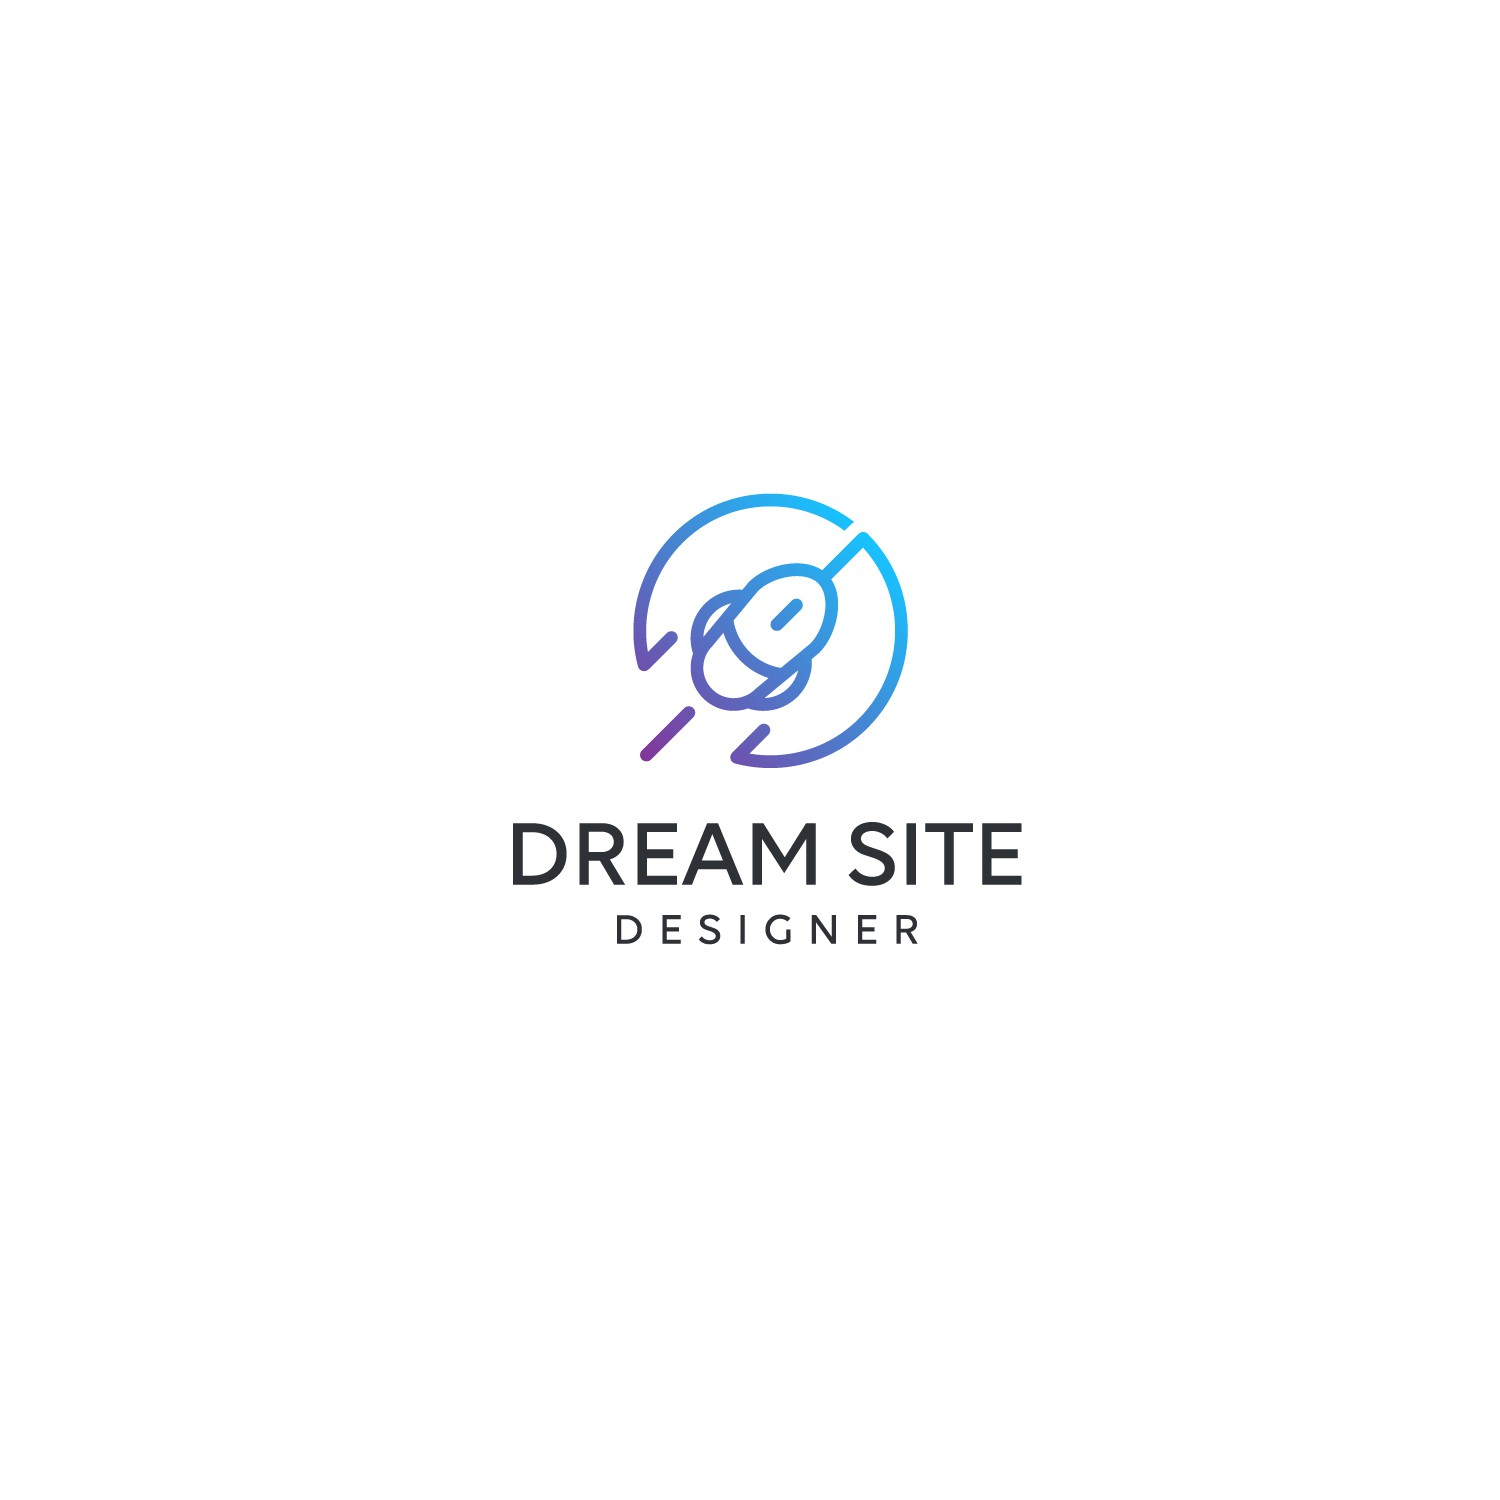 Web developers targeting small businesses with feelings of friendly and approachable professionalism